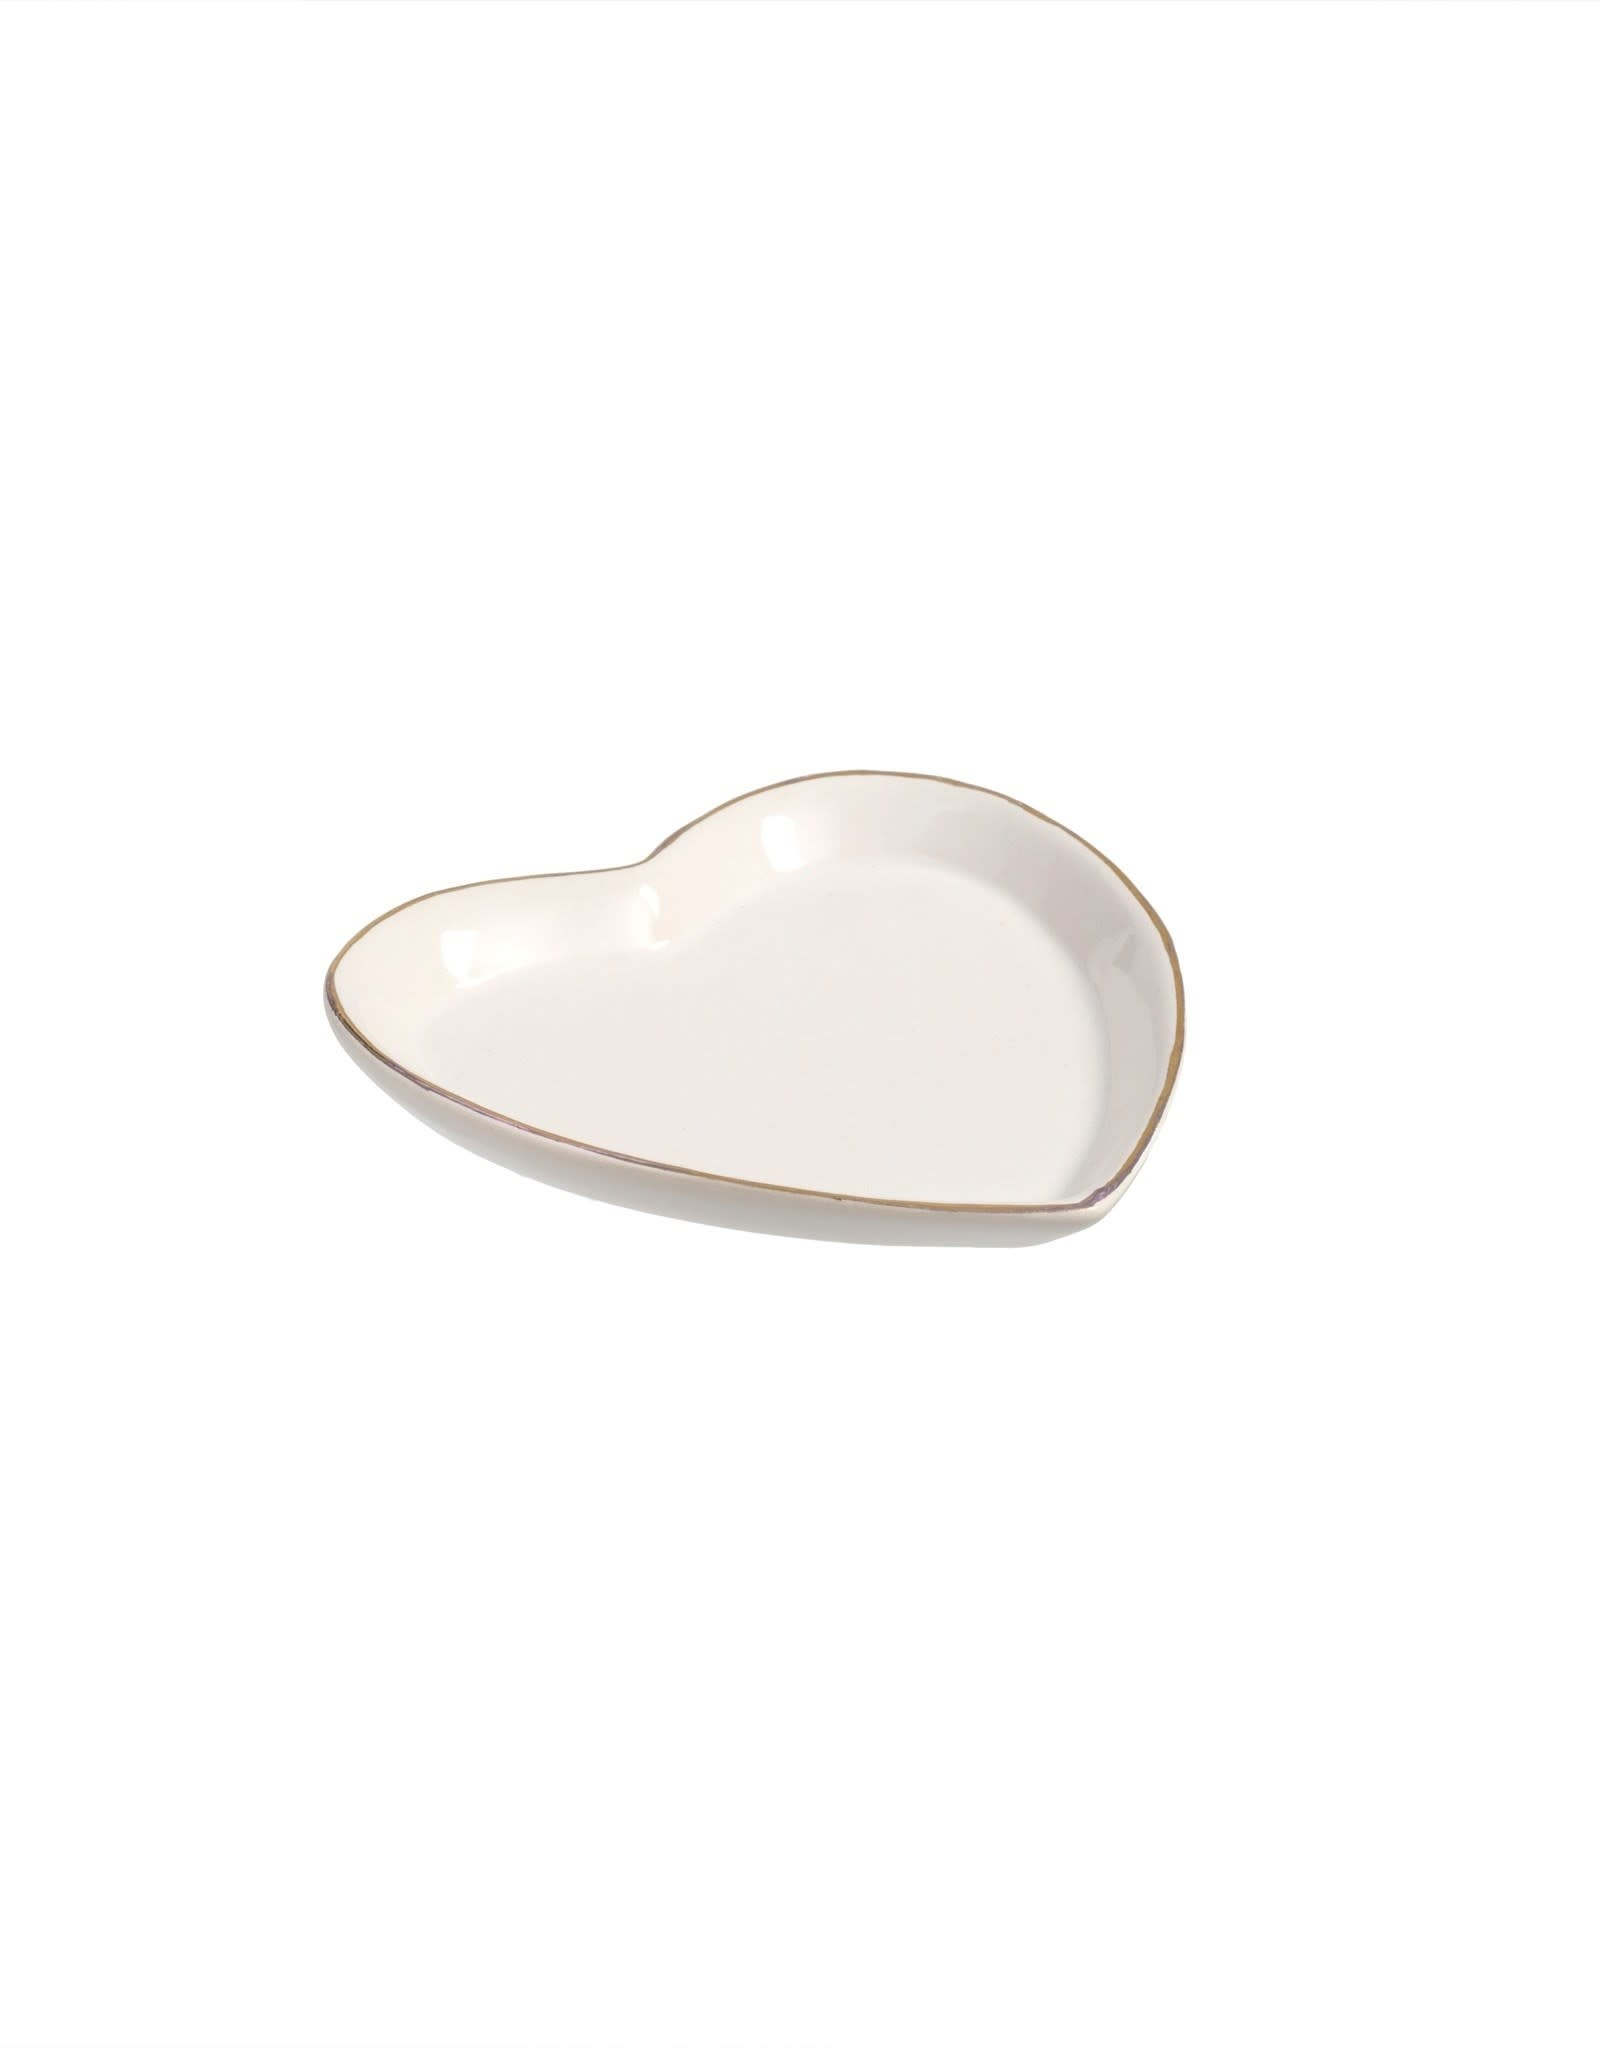 Heart Catch-All Dish - Small